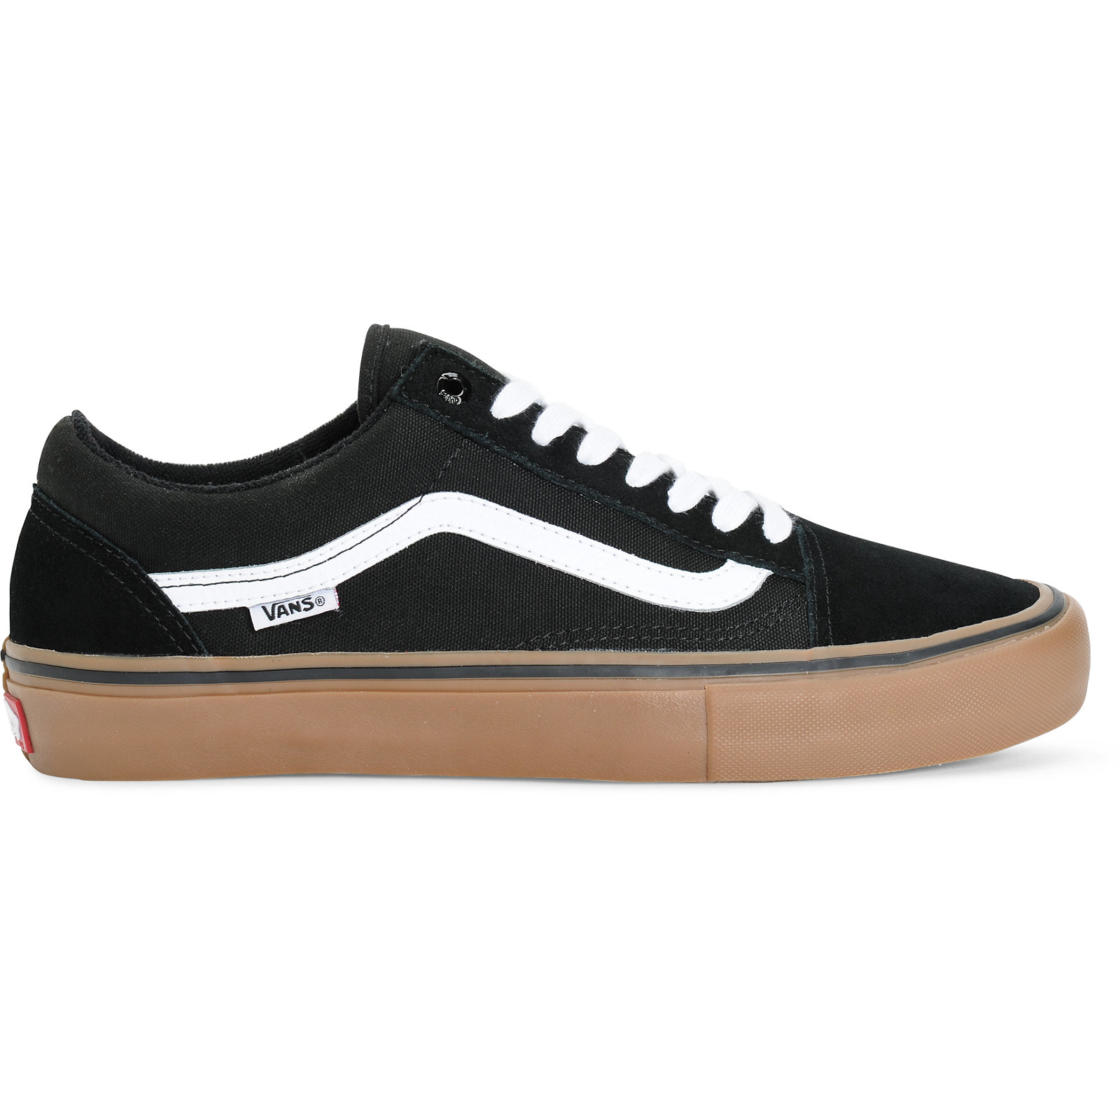 Buy Cheap Vans Shoes Online Canada